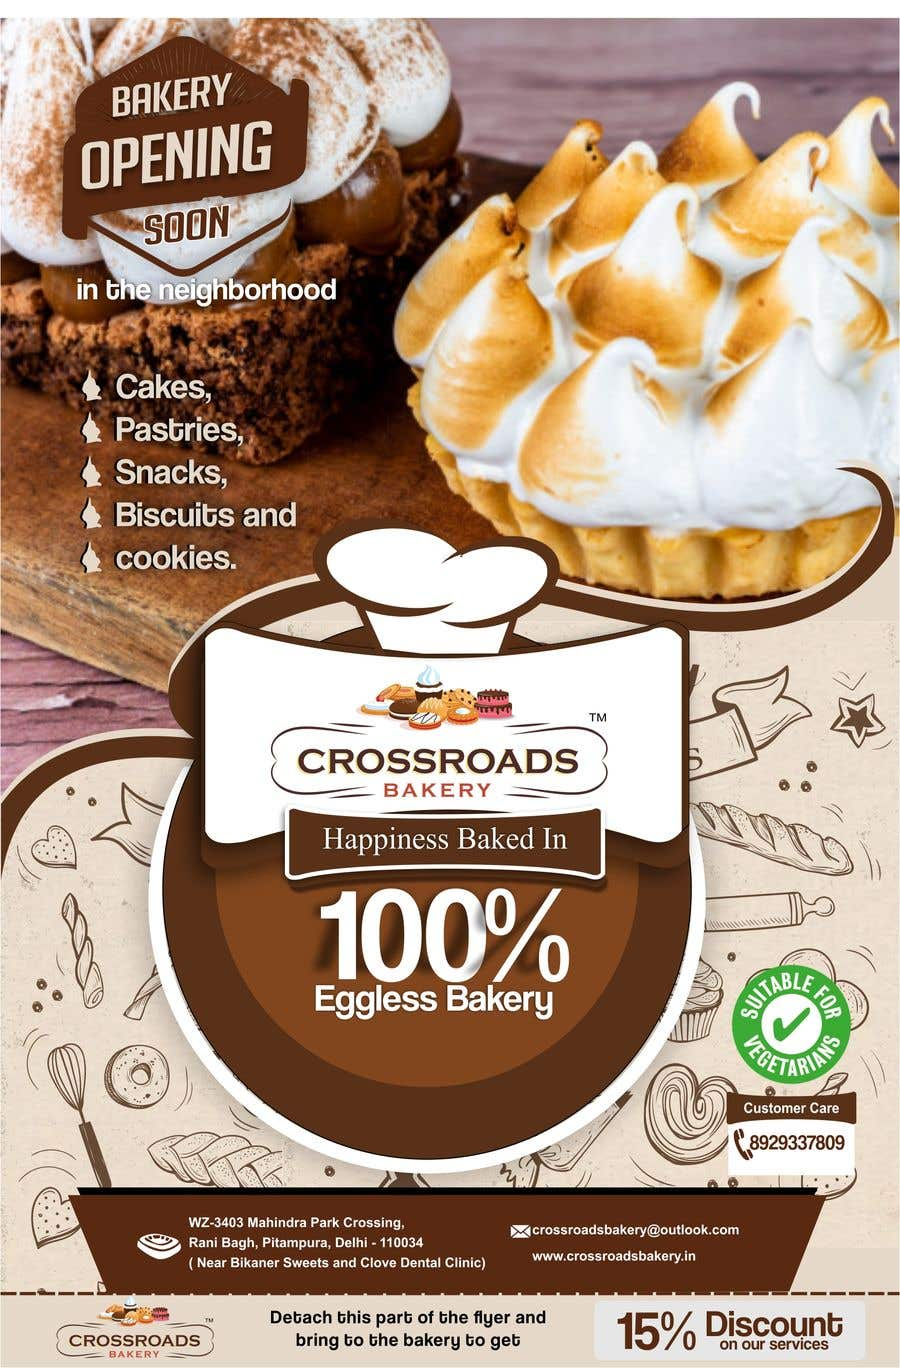 Penyertaan Peraduan #14 untuk Need a flyer for a new opening of a Bakery outlet